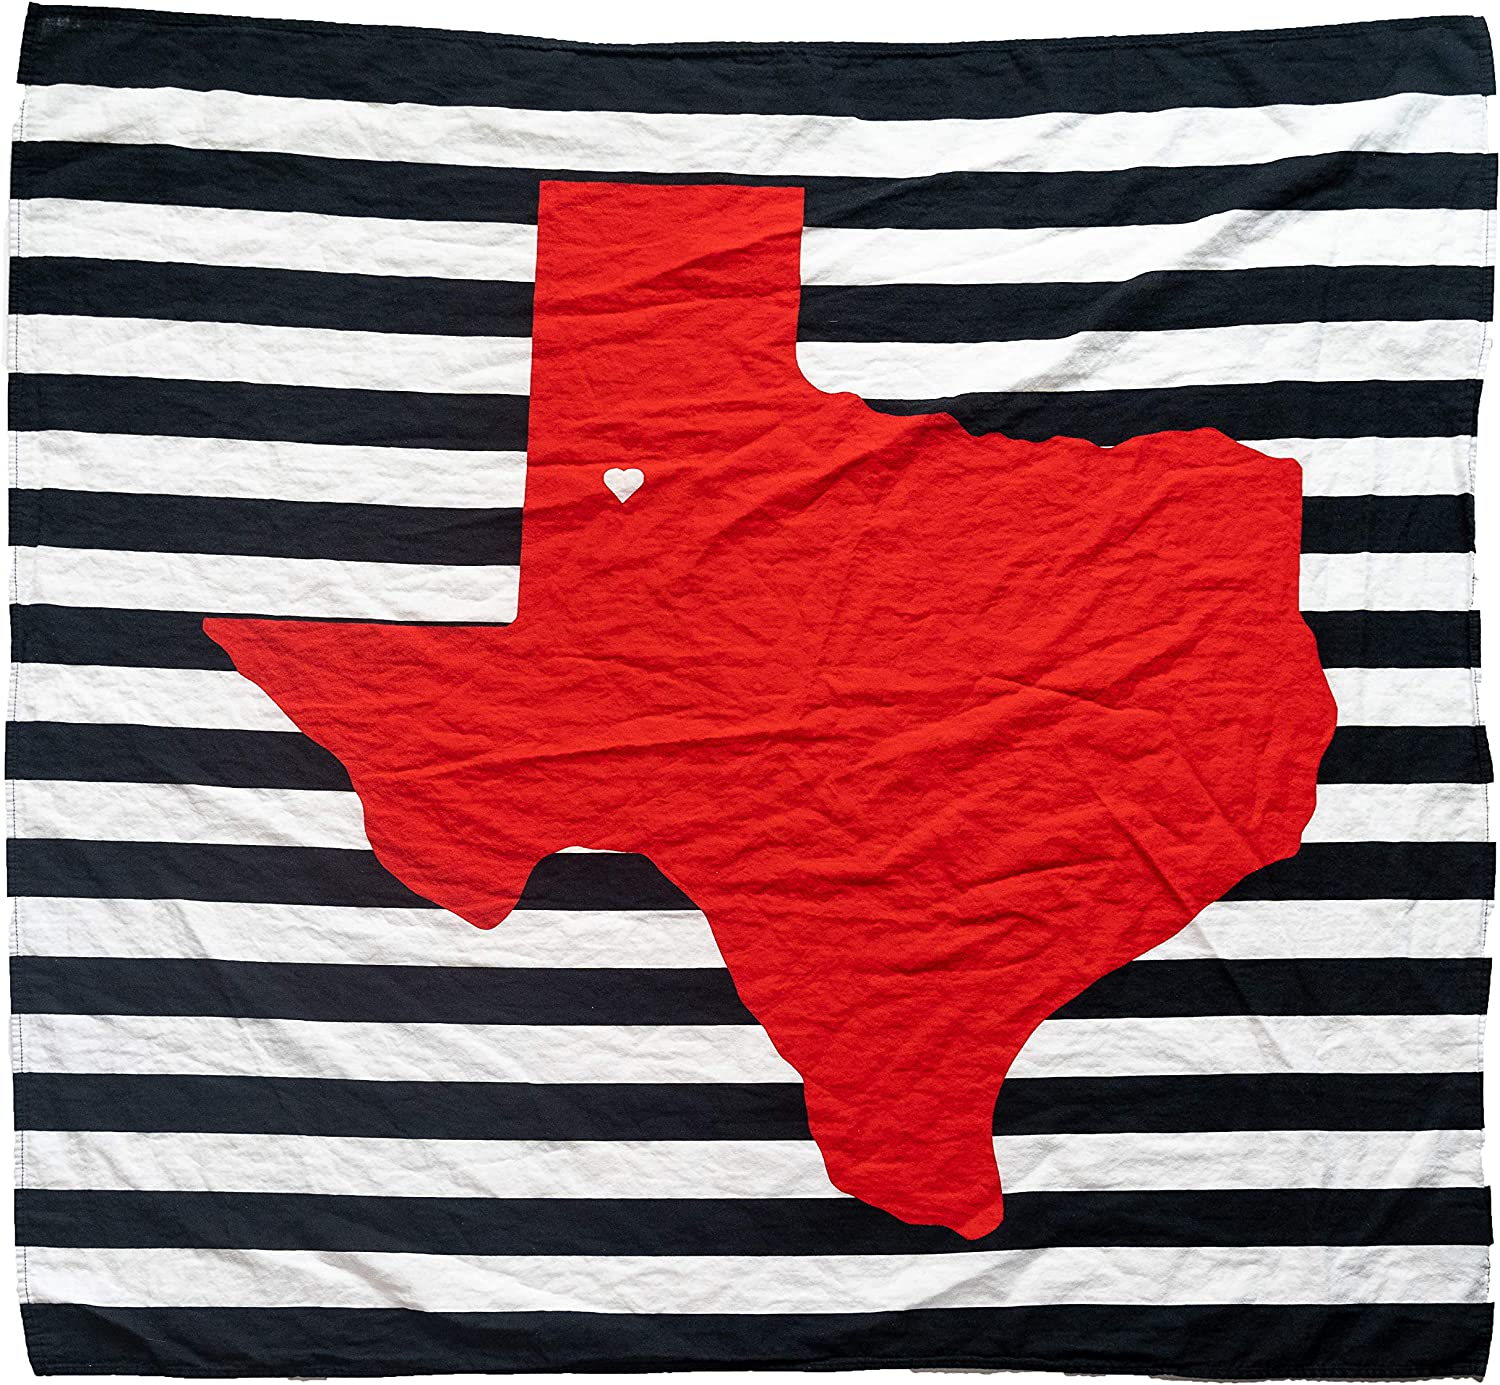 "Organic Cotton Muslin Swaddle Blanket - Lubbock Fans of Texas Tech Baby Blanket - 47"" x 43"" - Fans of Texas Tech Baby Gift - Soft Muslin Baby Blanket for Boys and Girls"